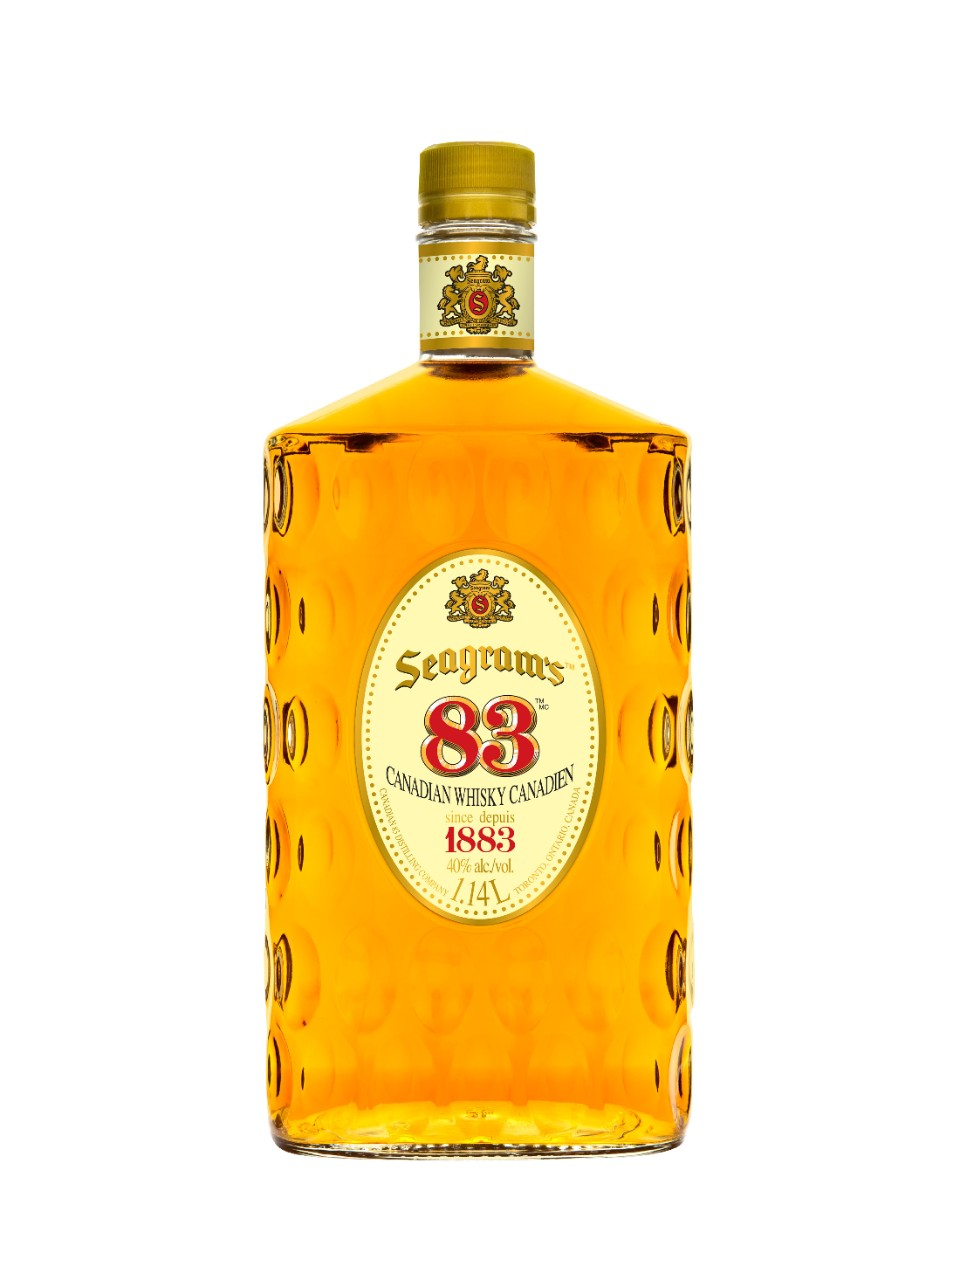 Whisky Seagram's 83